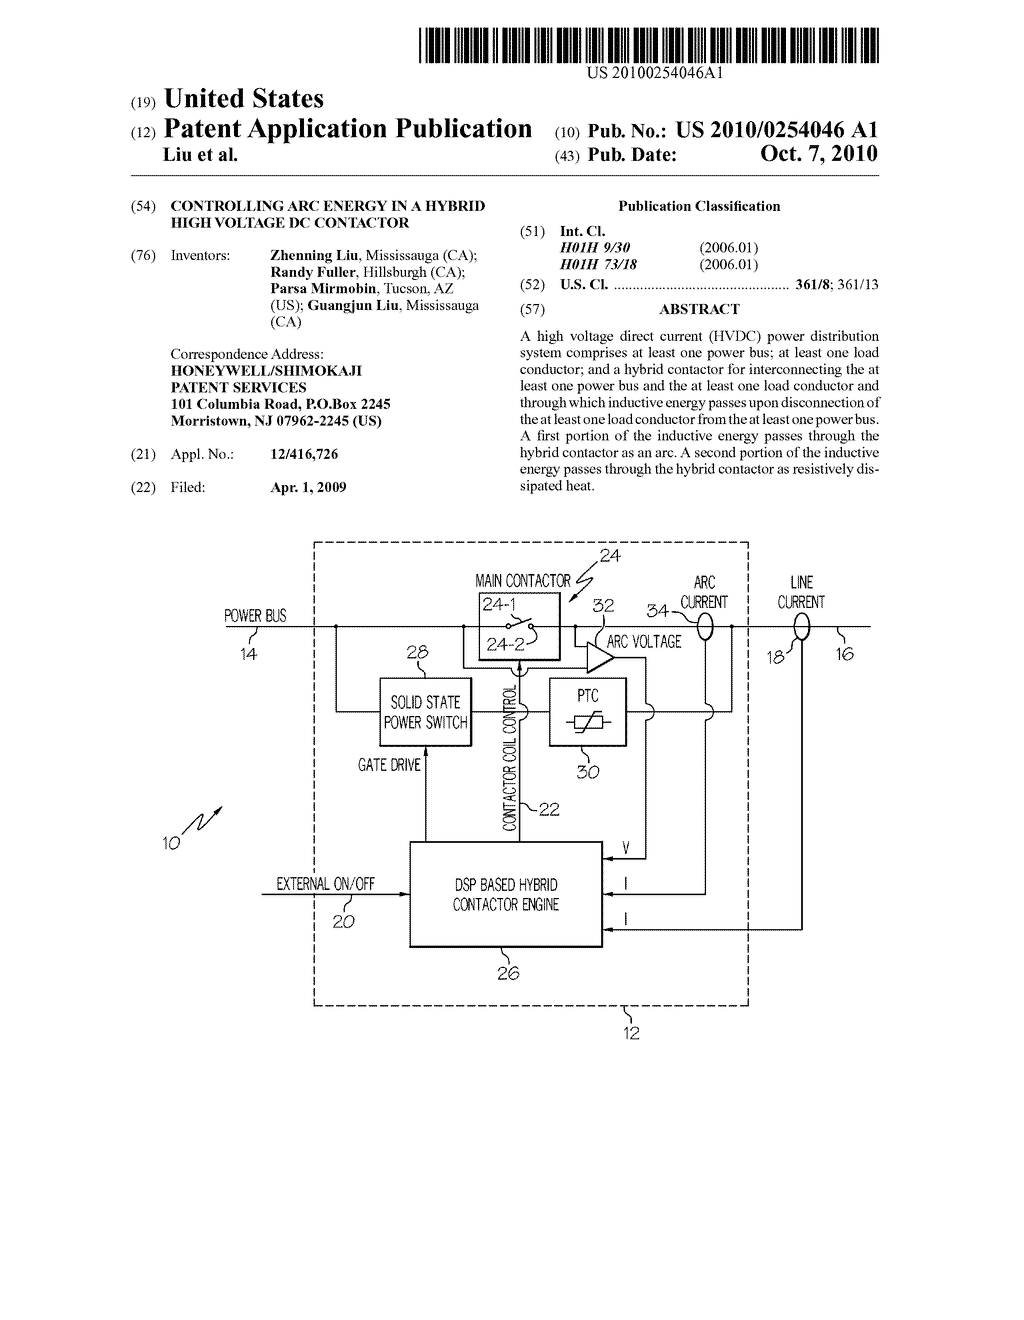 CONTROLLING ARC ENERGY IN A HYBRID HIGH VOLTAGE DC CONTACTOR